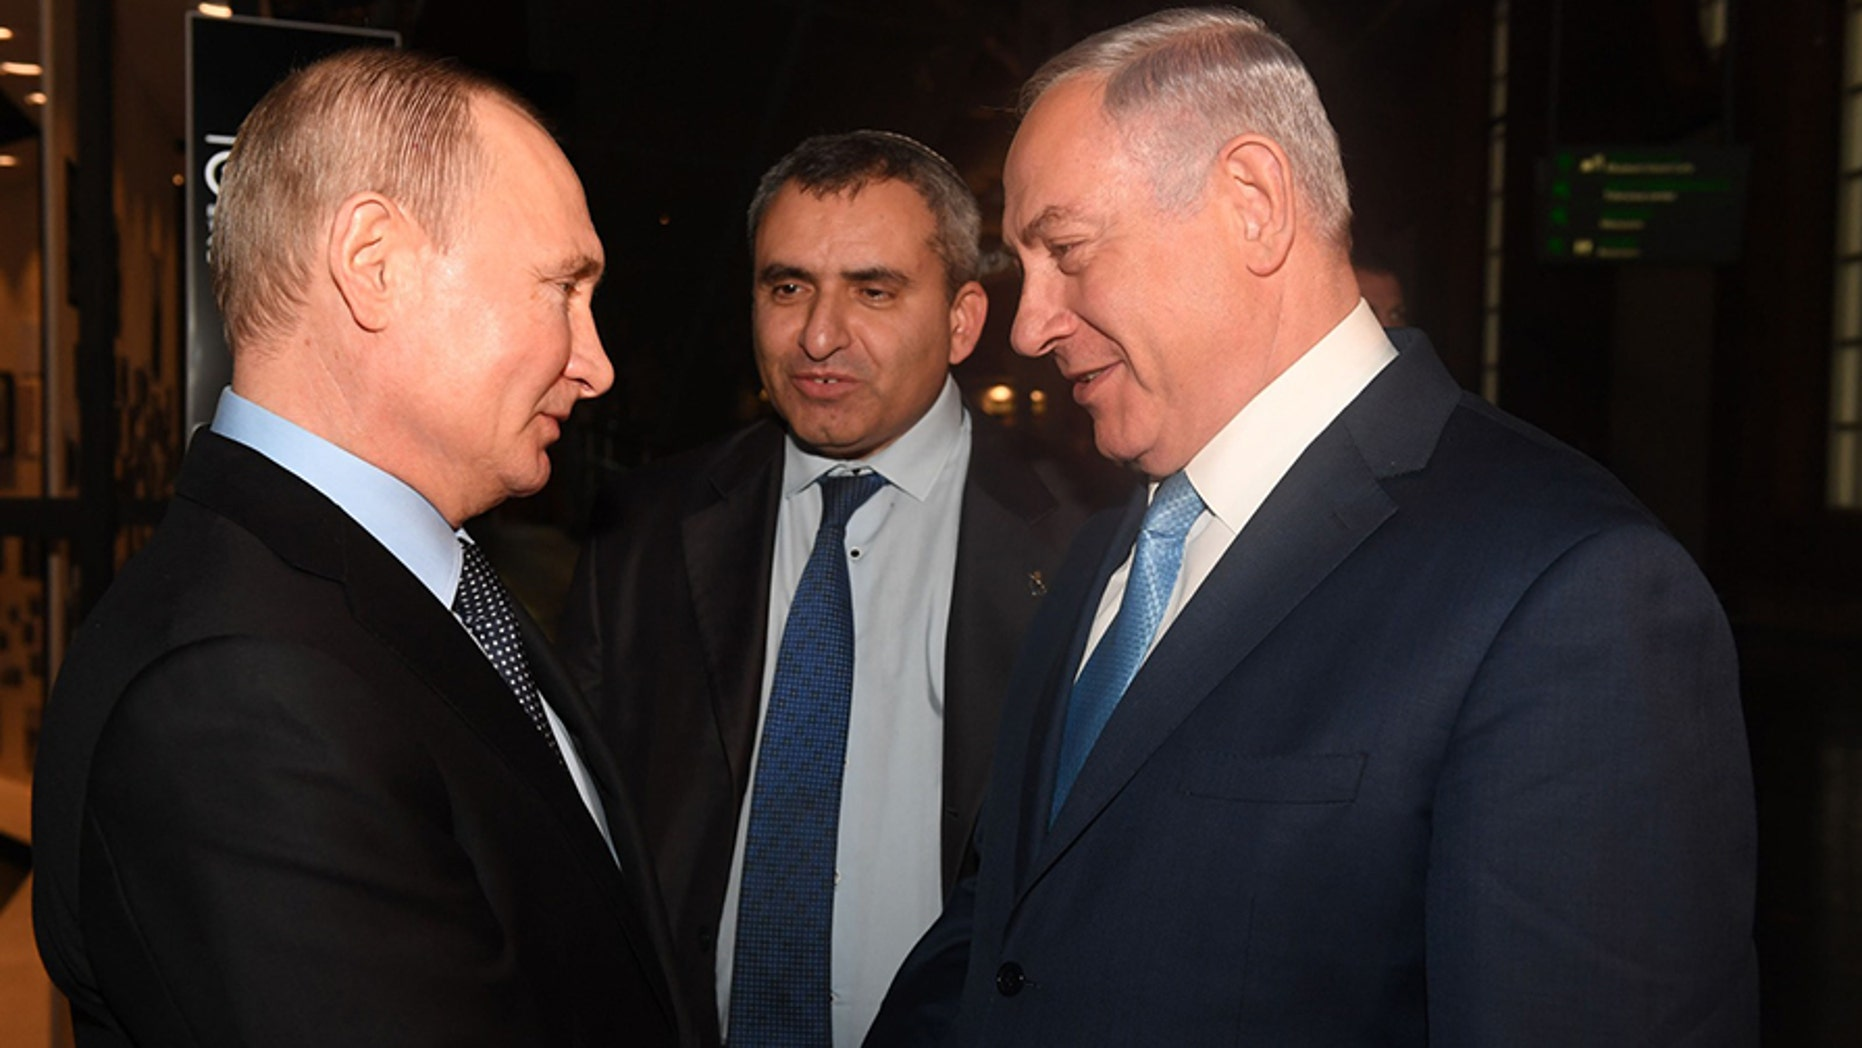 Russian President Vladimir Putin and Israeli Prime Minister Benjamin Netanyahu met Monday in Moscow to discuss remnants of the Holocaust and the future of Syria. (Israeli Prime Minister Office)